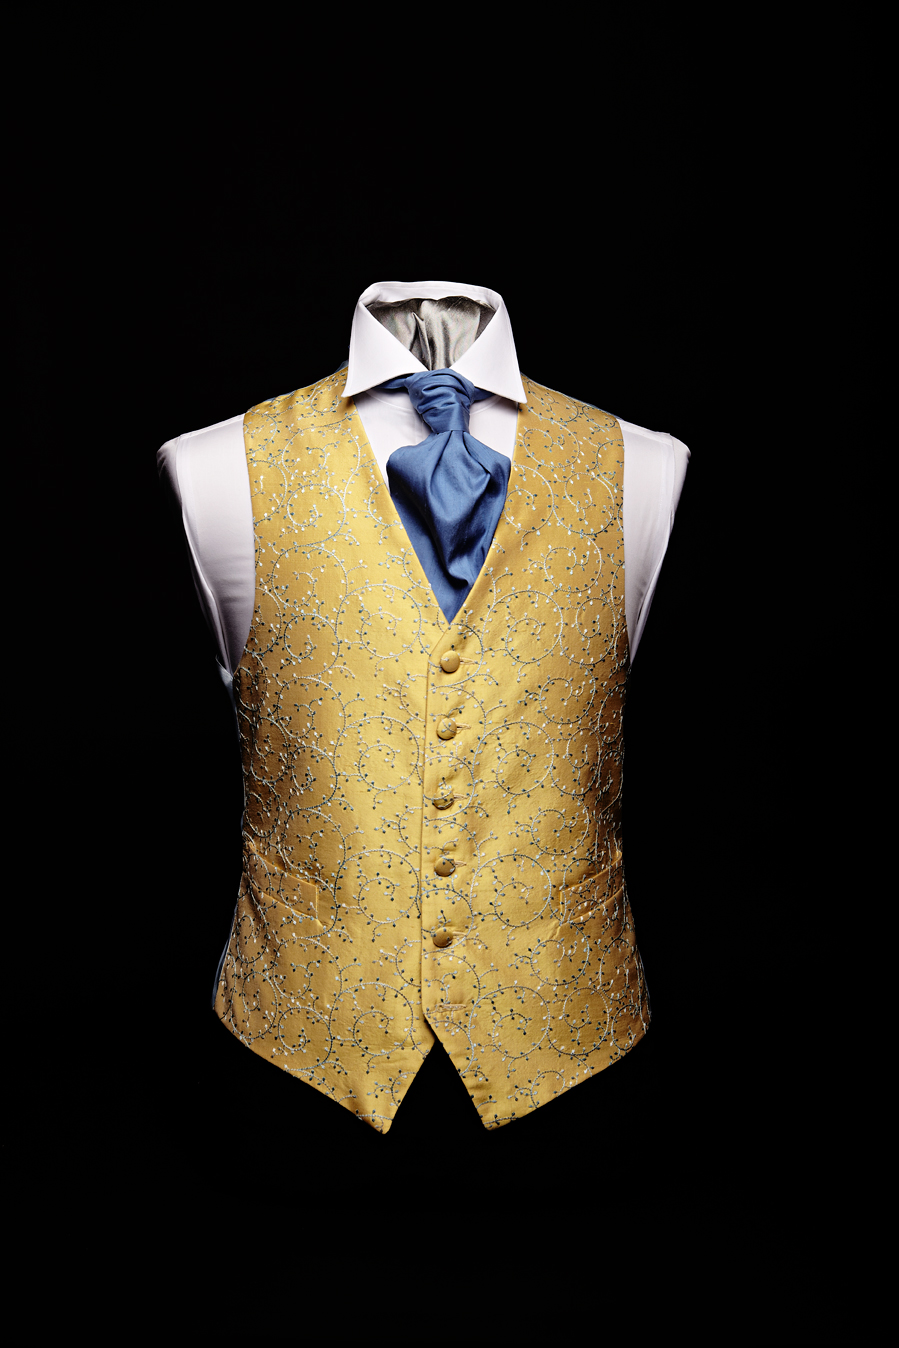 Yellow silk swirl embroidered waistcoat with blue embroidery